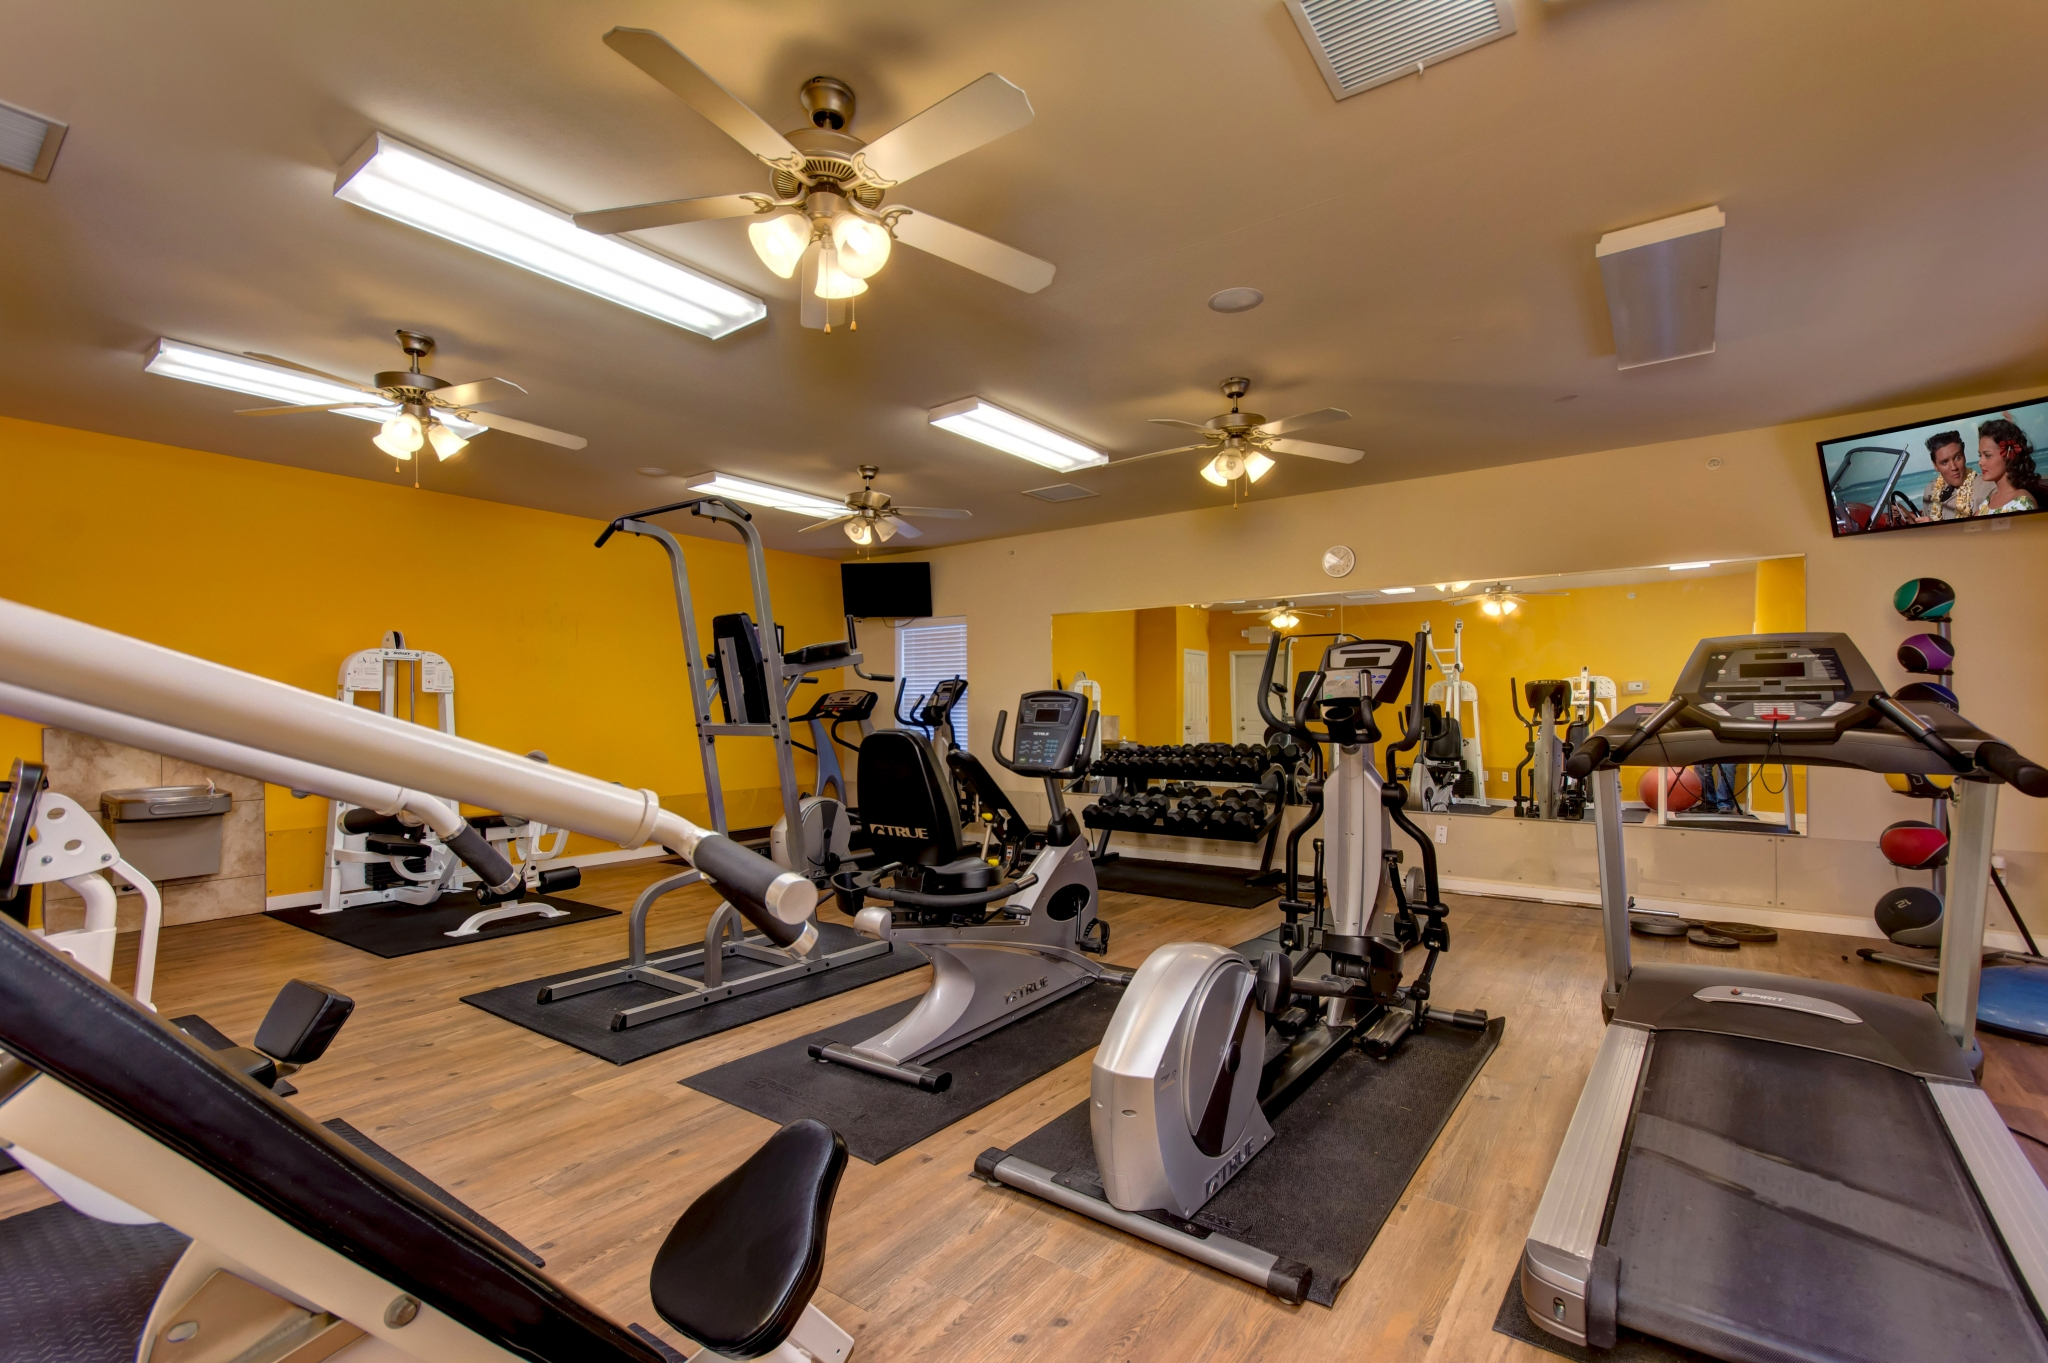 Palm Village - TLC Properties - Apartments Springfield, MO - Fitness - Fitness Center - Gym